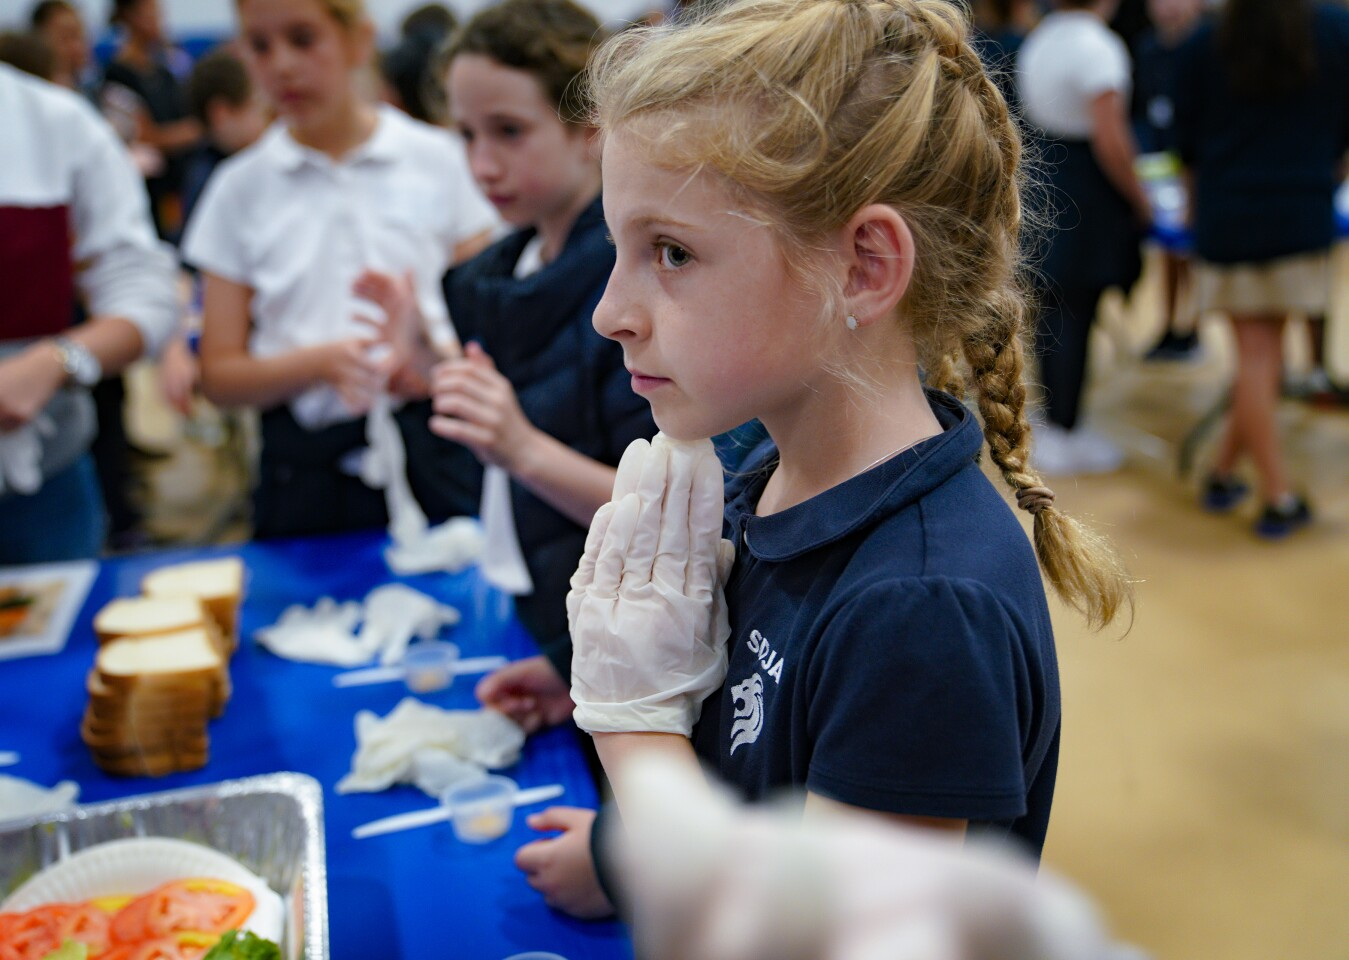 Fourth grader Emuna McCurdy is gloved up and ready for the official start San Diego Jewish Academy's attempt to assembled as many sandwiches possible in 3-minutes.